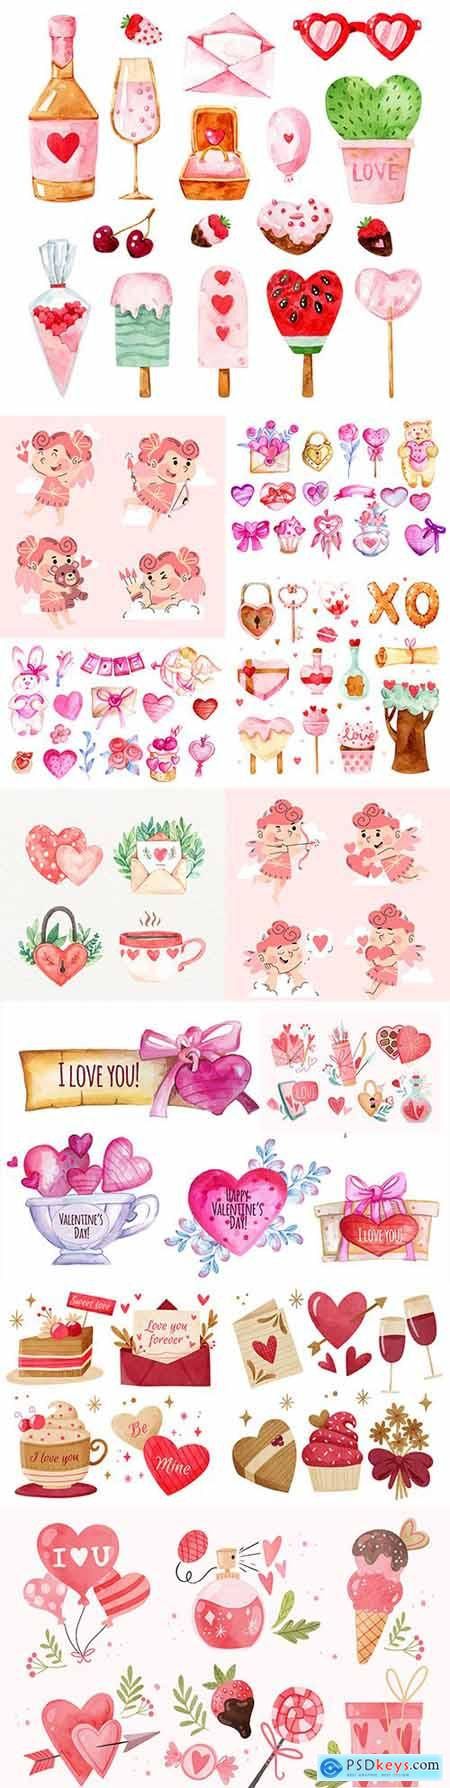 St Valentines day romantic watercolor illustrations collection 6